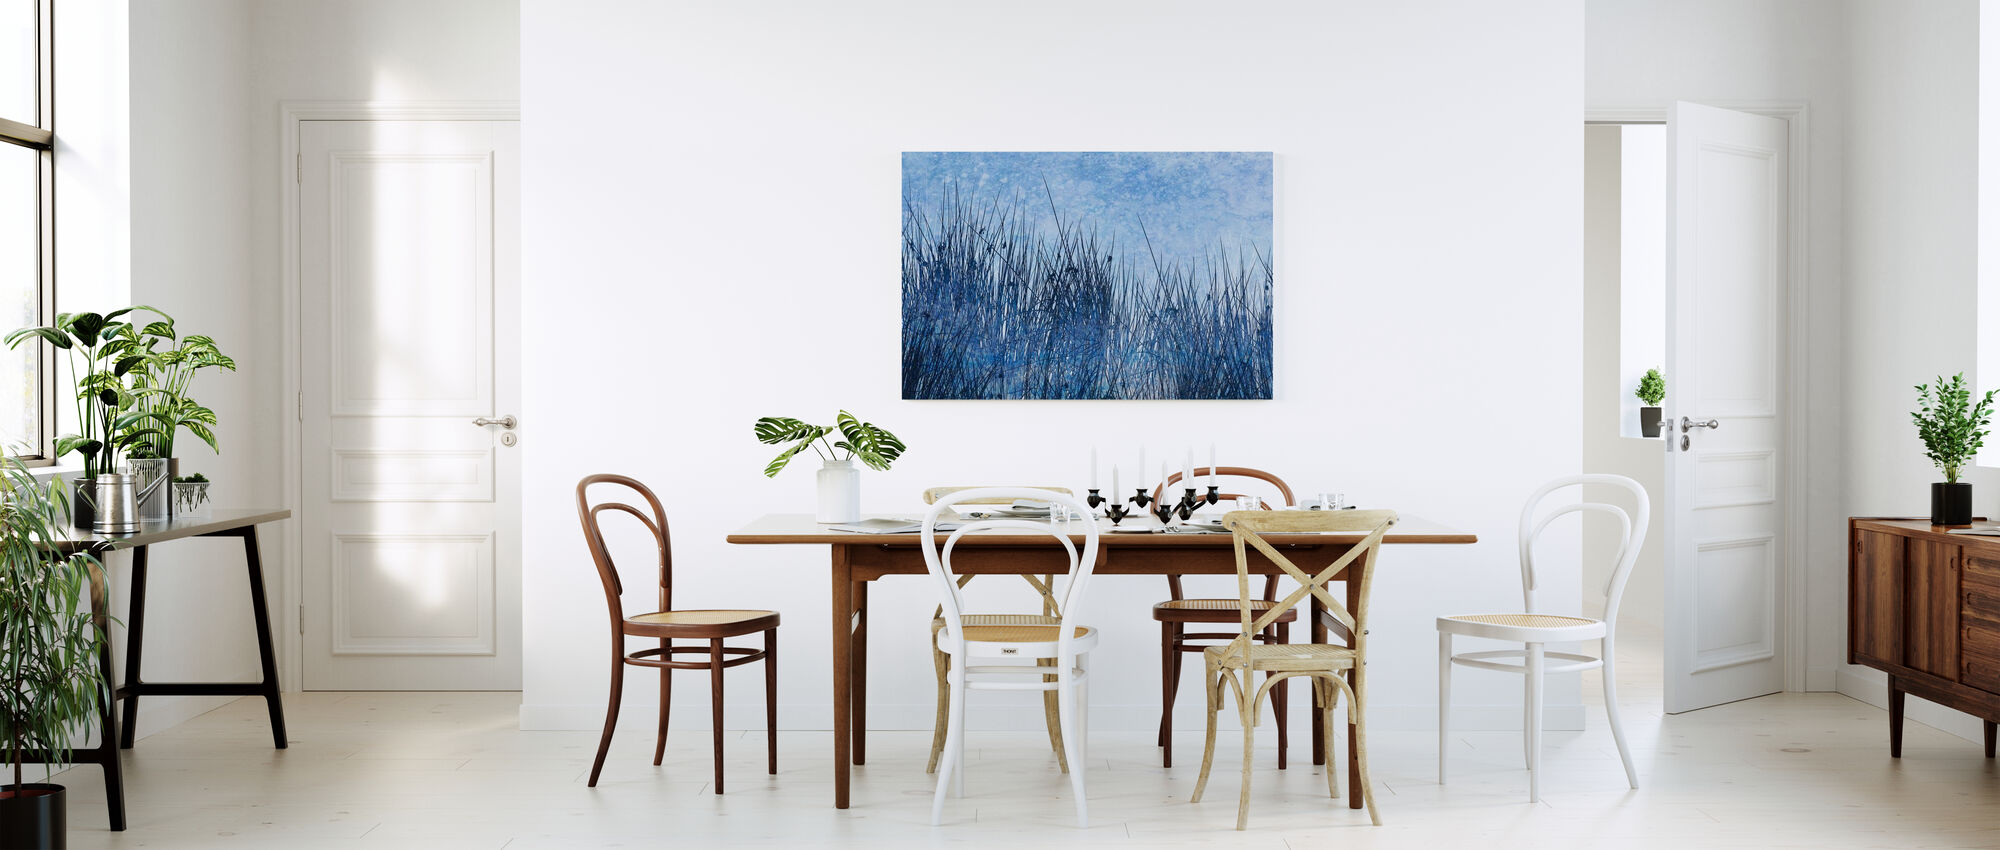 Blue Grass Silhouette - Canvas print - Kitchen